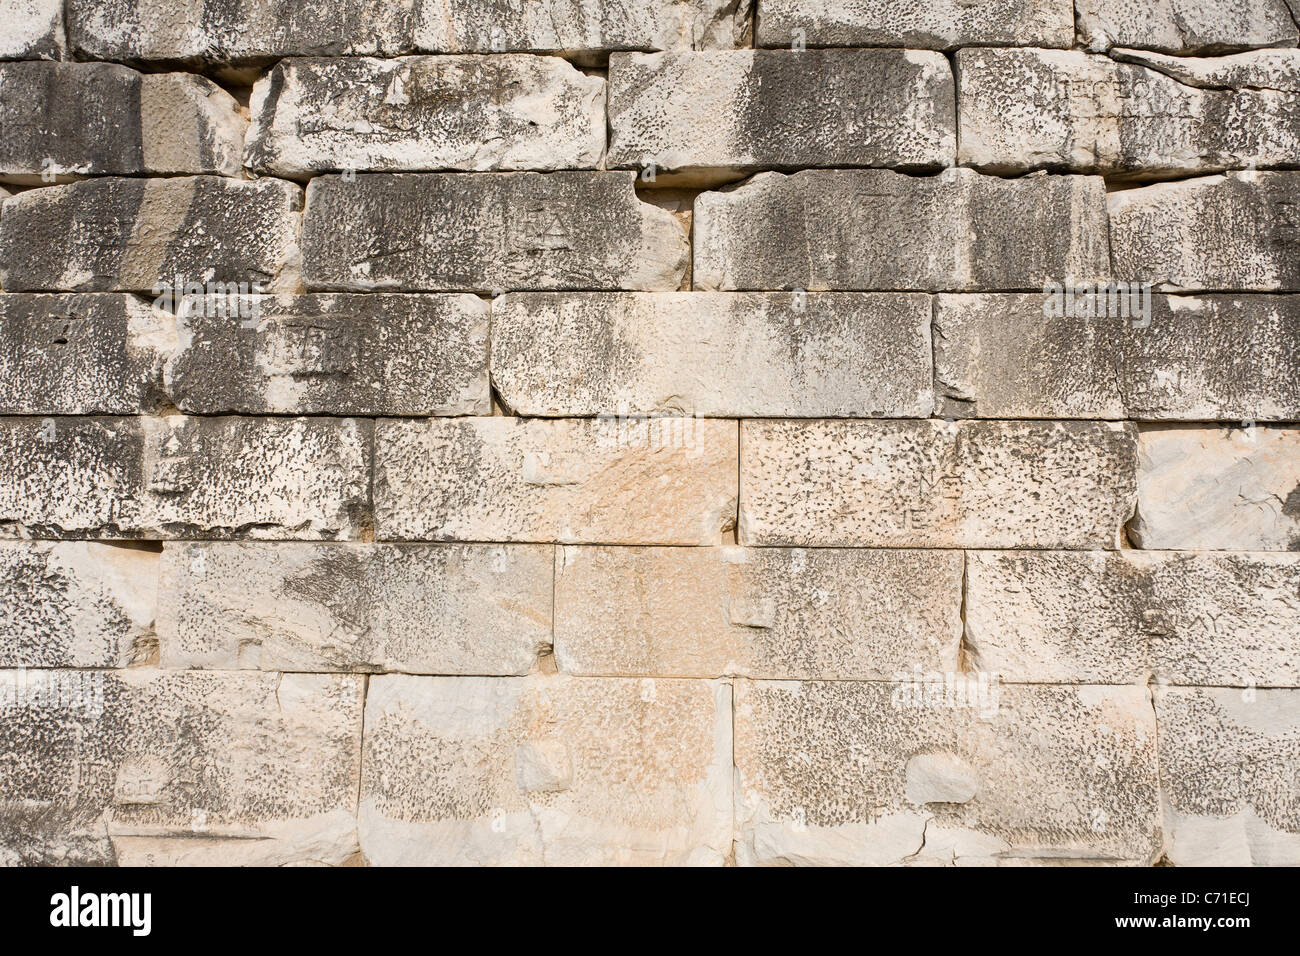 Homemade Temple Block ~ Temple wall details of the huge white and grey stone